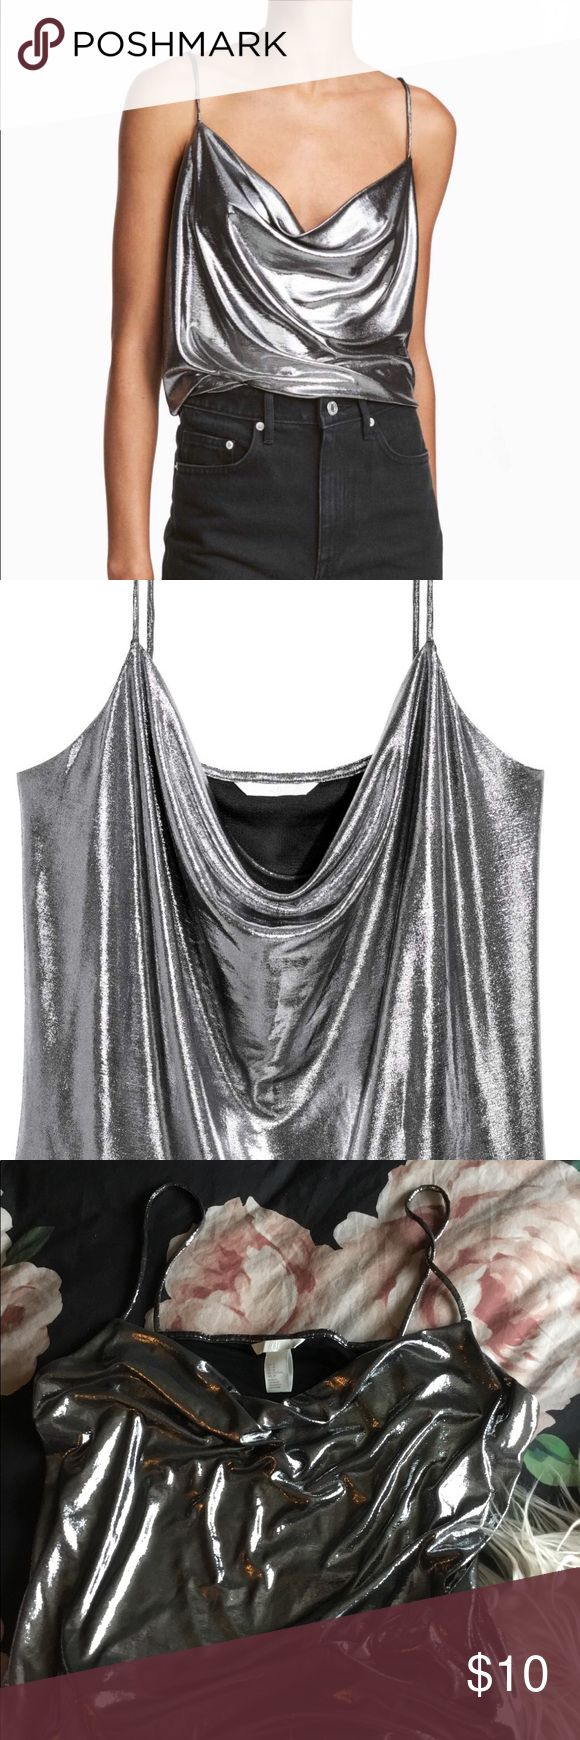 BRAND NEW H&M Dropped neckline metallic cami Never worn H&M shiny blouse. Trendy drooped neckline. H&M Tops Camisoles